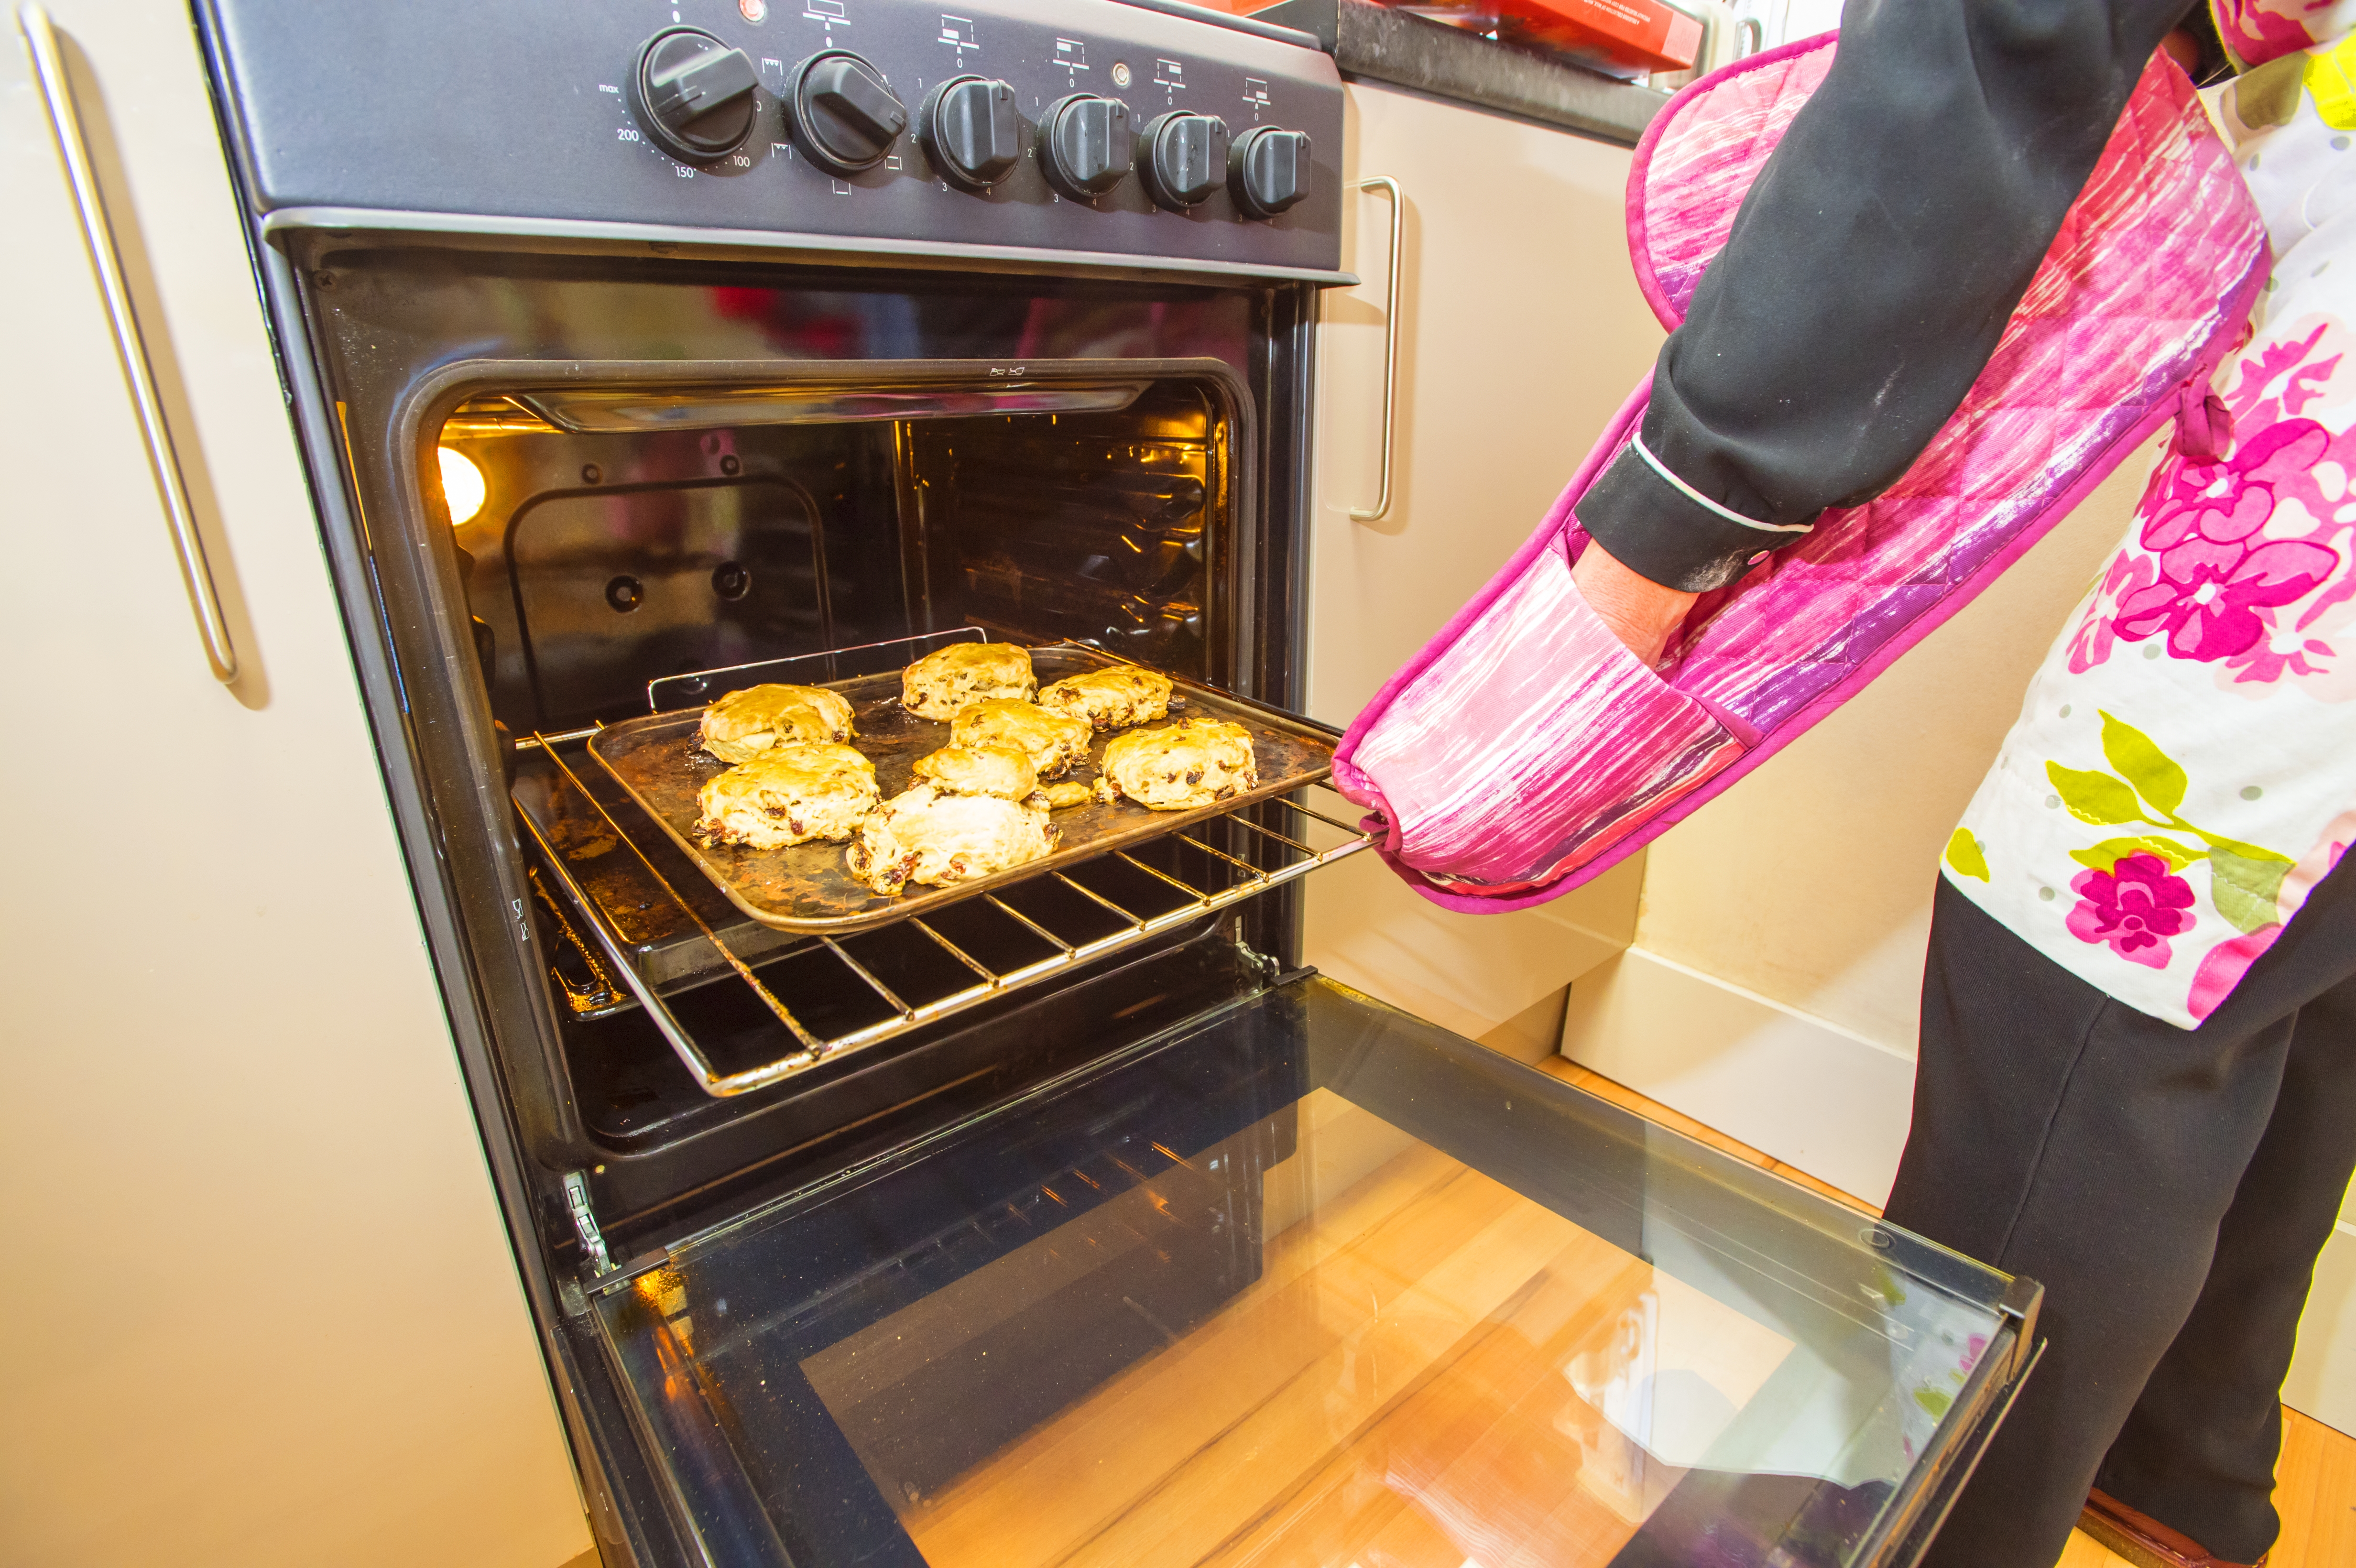 Scones fresh from the oven to help raise funds for UK veterans - copyright Rob Leyland